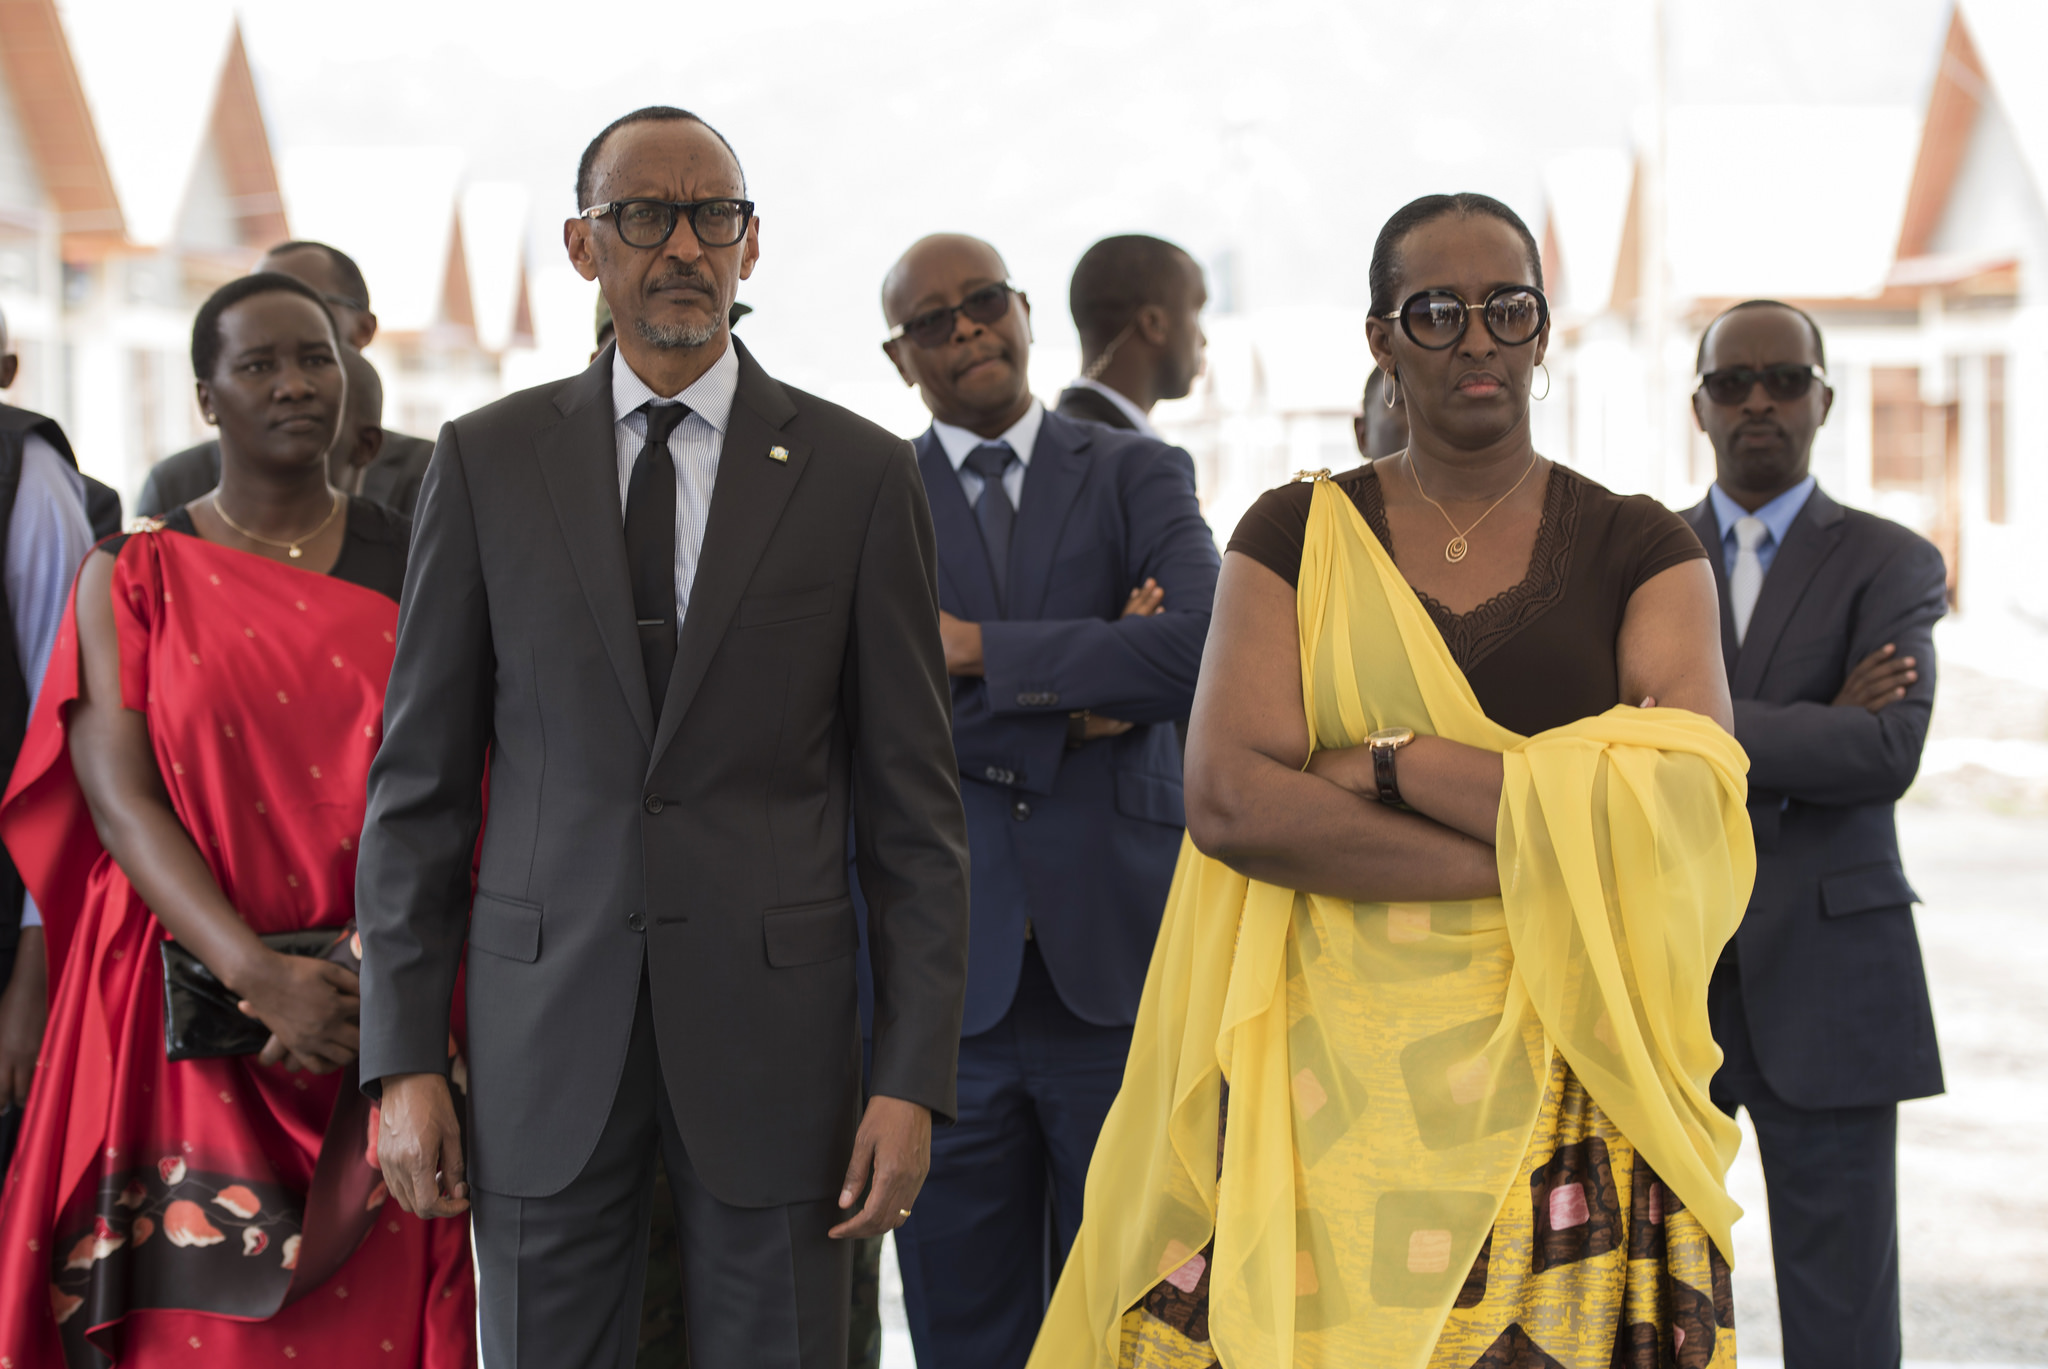 What Might Paul And Jeannette Kagame Be Thinking After The Fall Of The Mugabes?